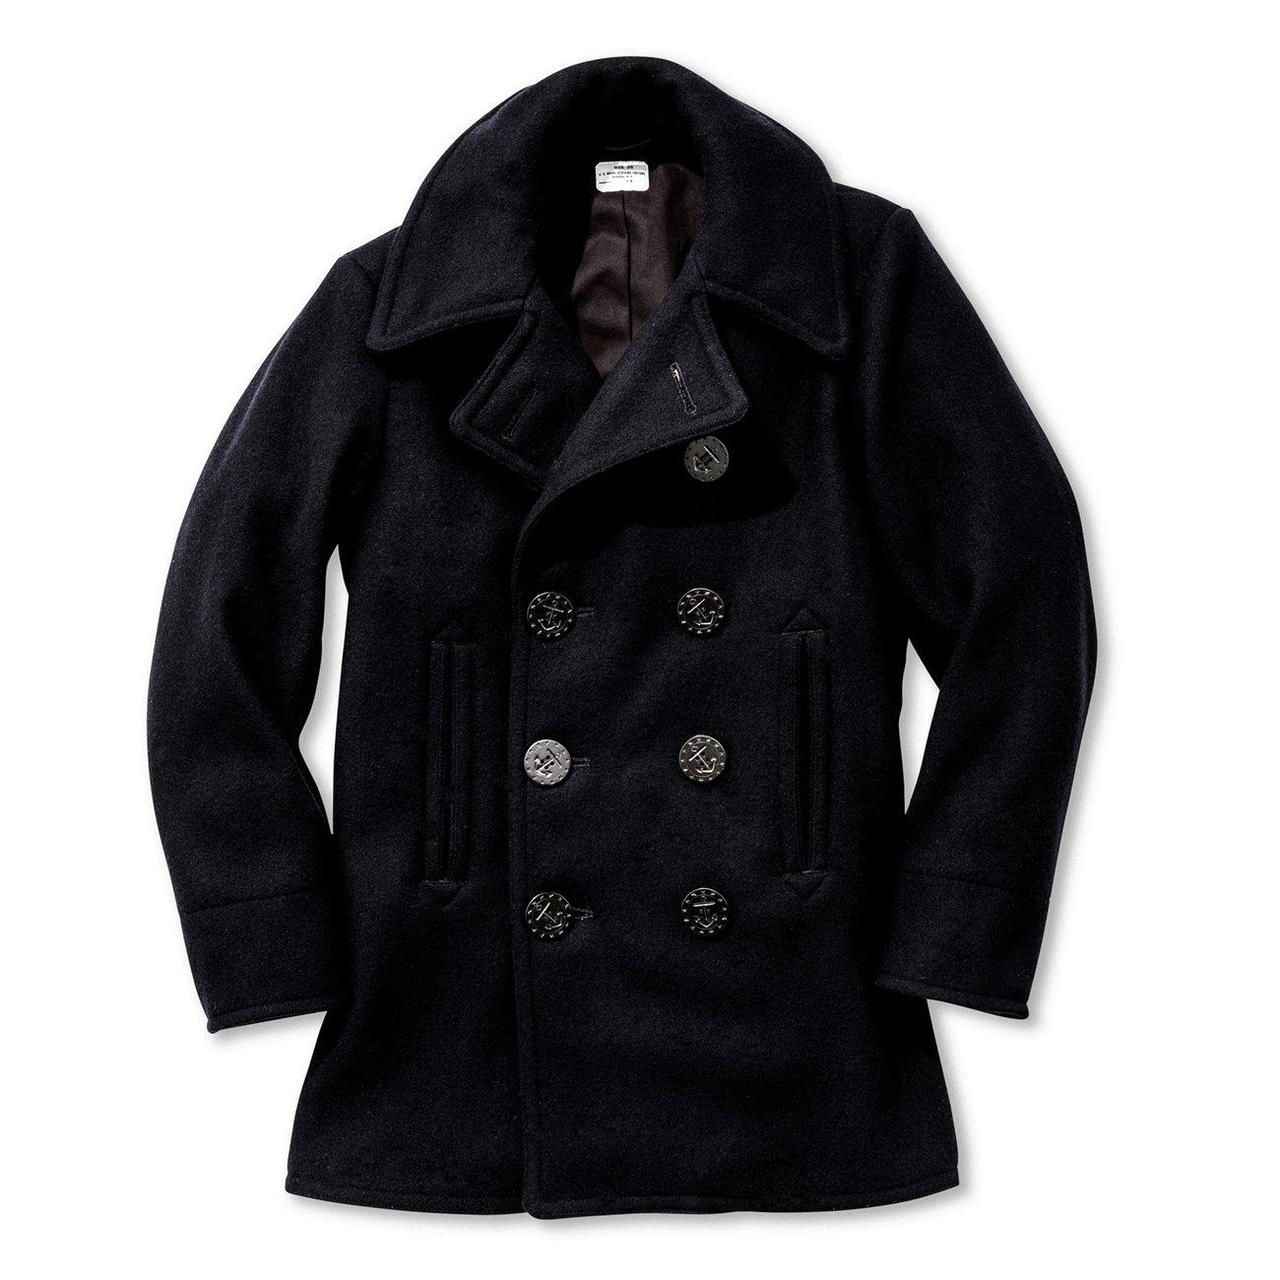 WWII U.S. Navy Pea Coat-Outerwear-Clutch Cafe